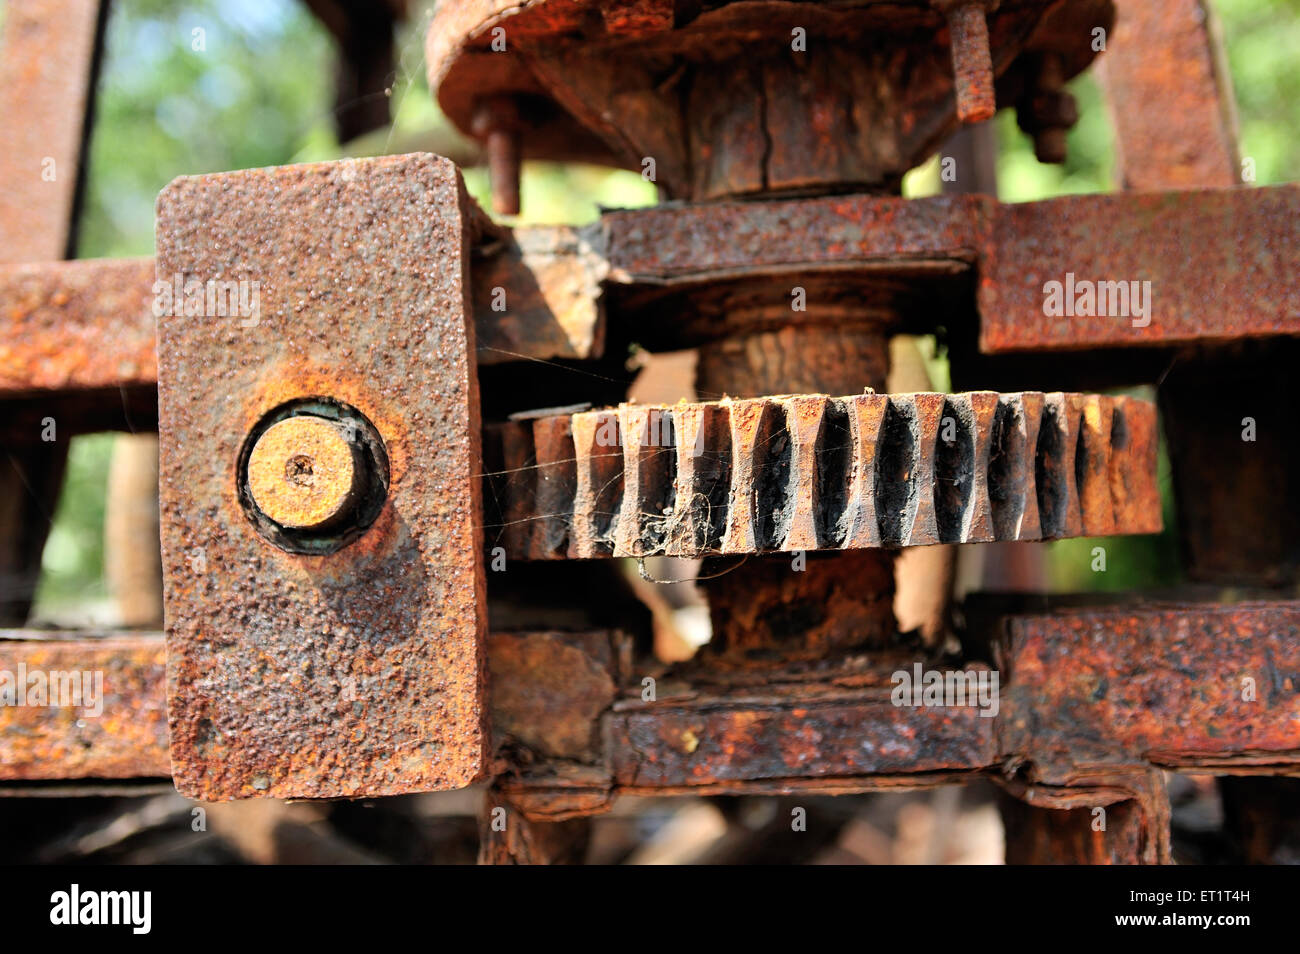 Rusted gears - Stock Image